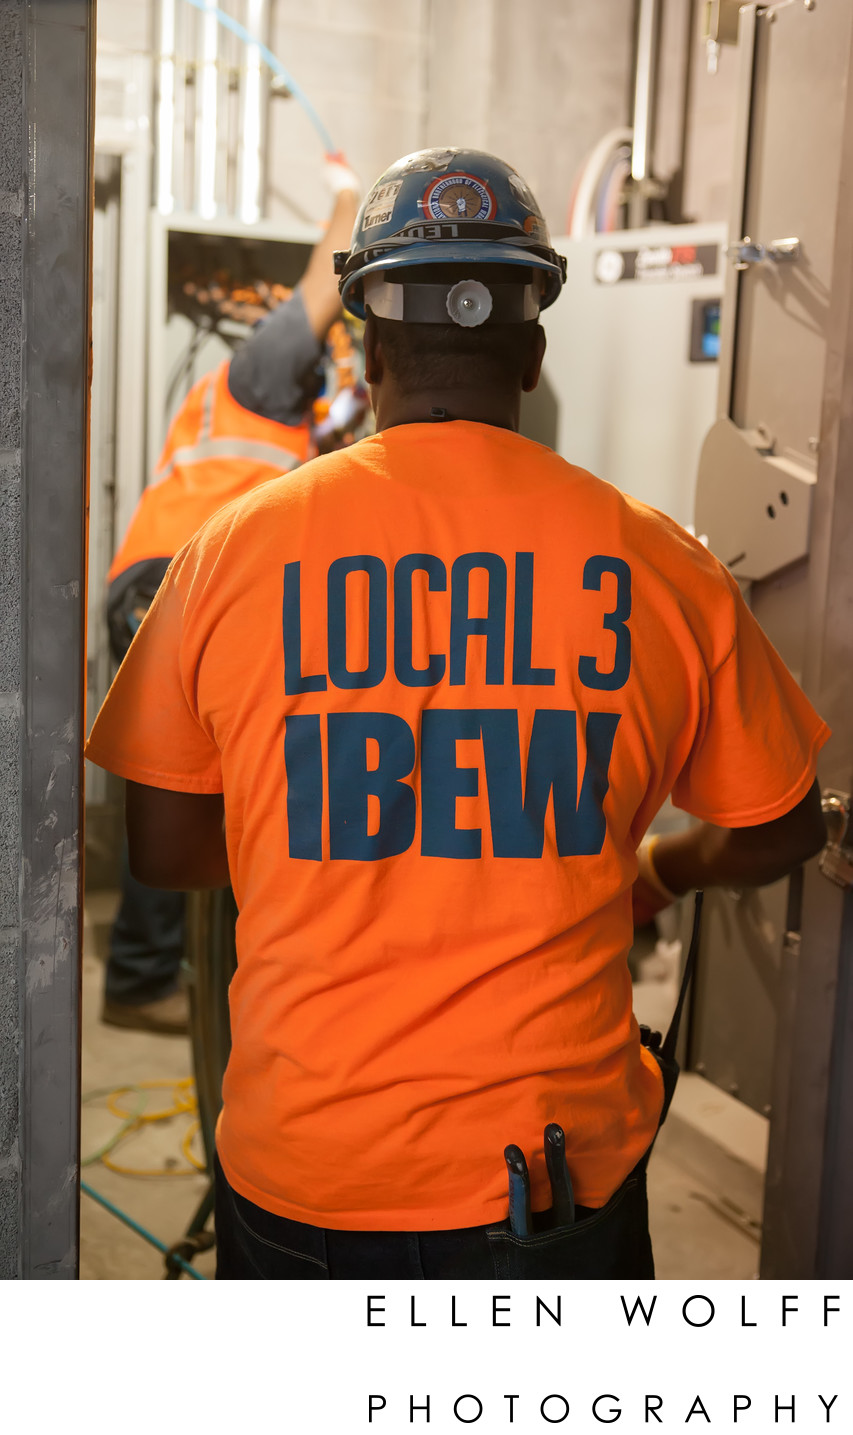 local 3 IBEW electricians workforce